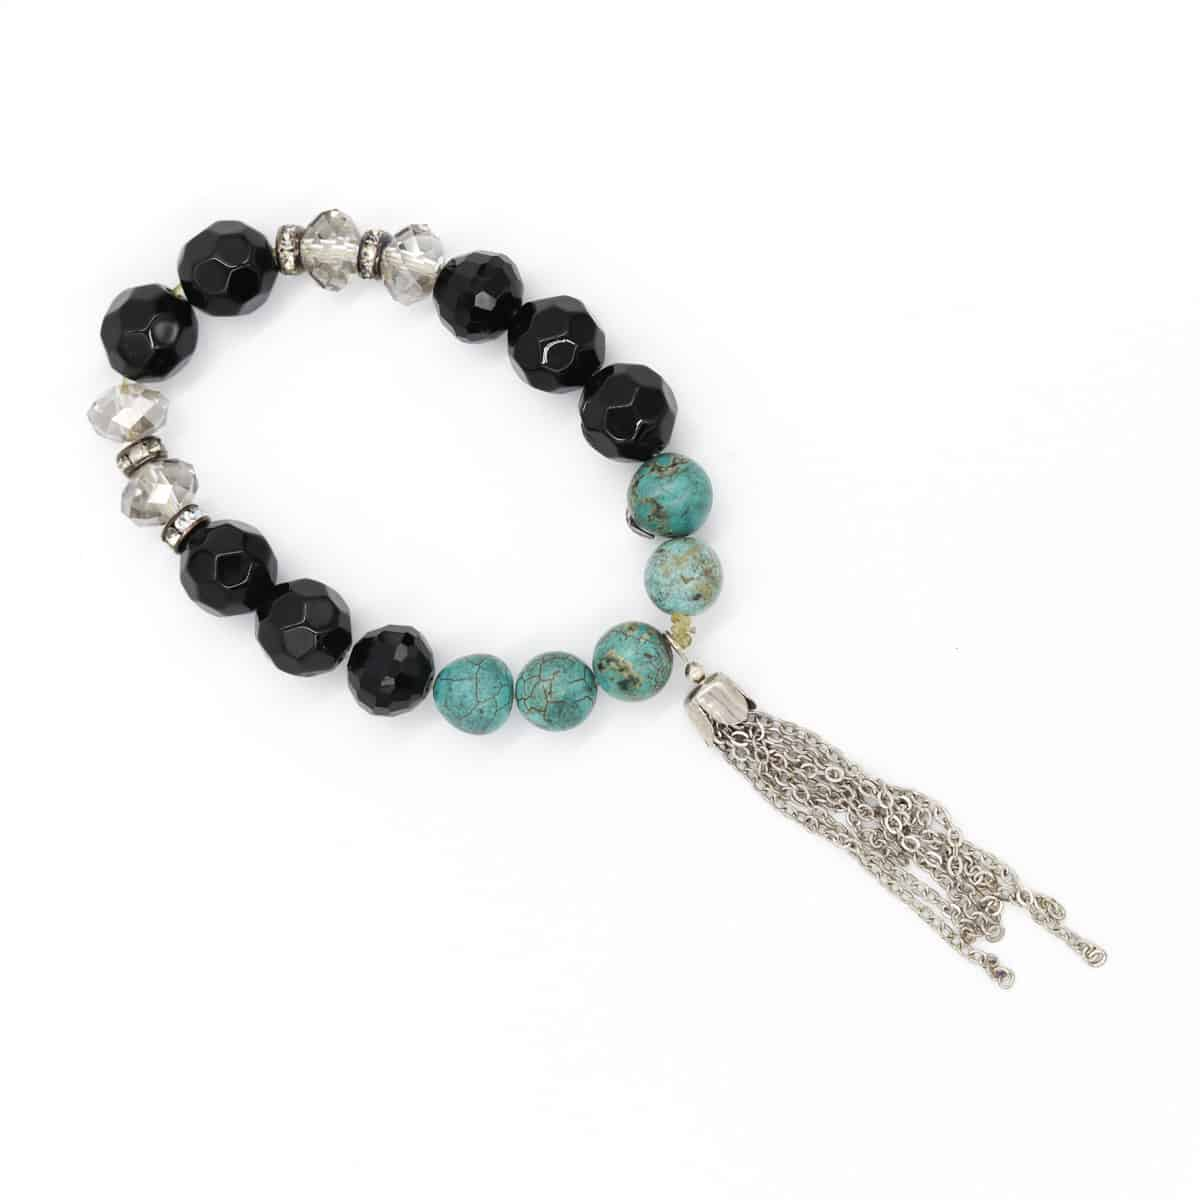 Turquoise And Black Aztec Moonrock Swarovski Crystal Stretch Bracelet By BJewel*Co